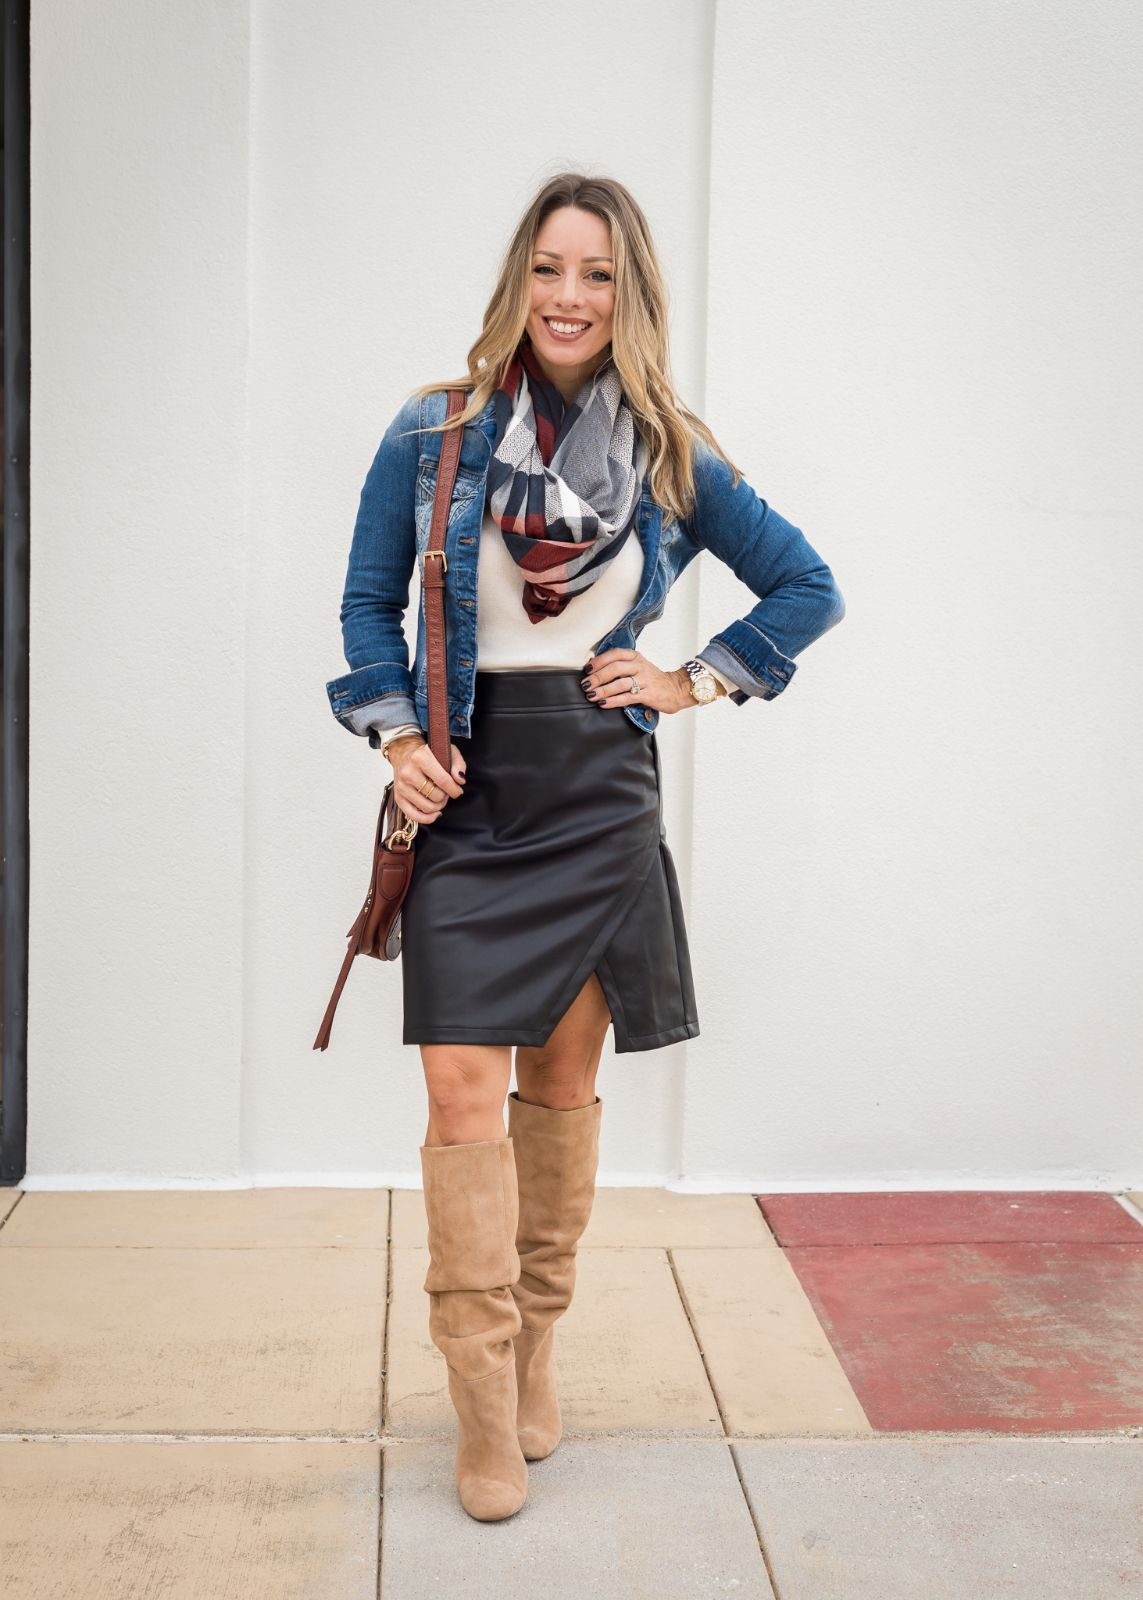 6 Black Leather Skirt Outfit Ideas For Fall Honey We Re Home Leather Skirt Outfit Winter Leather Skirt Outfit Black Leather Skirts [ 1600 x 1143 Pixel ]